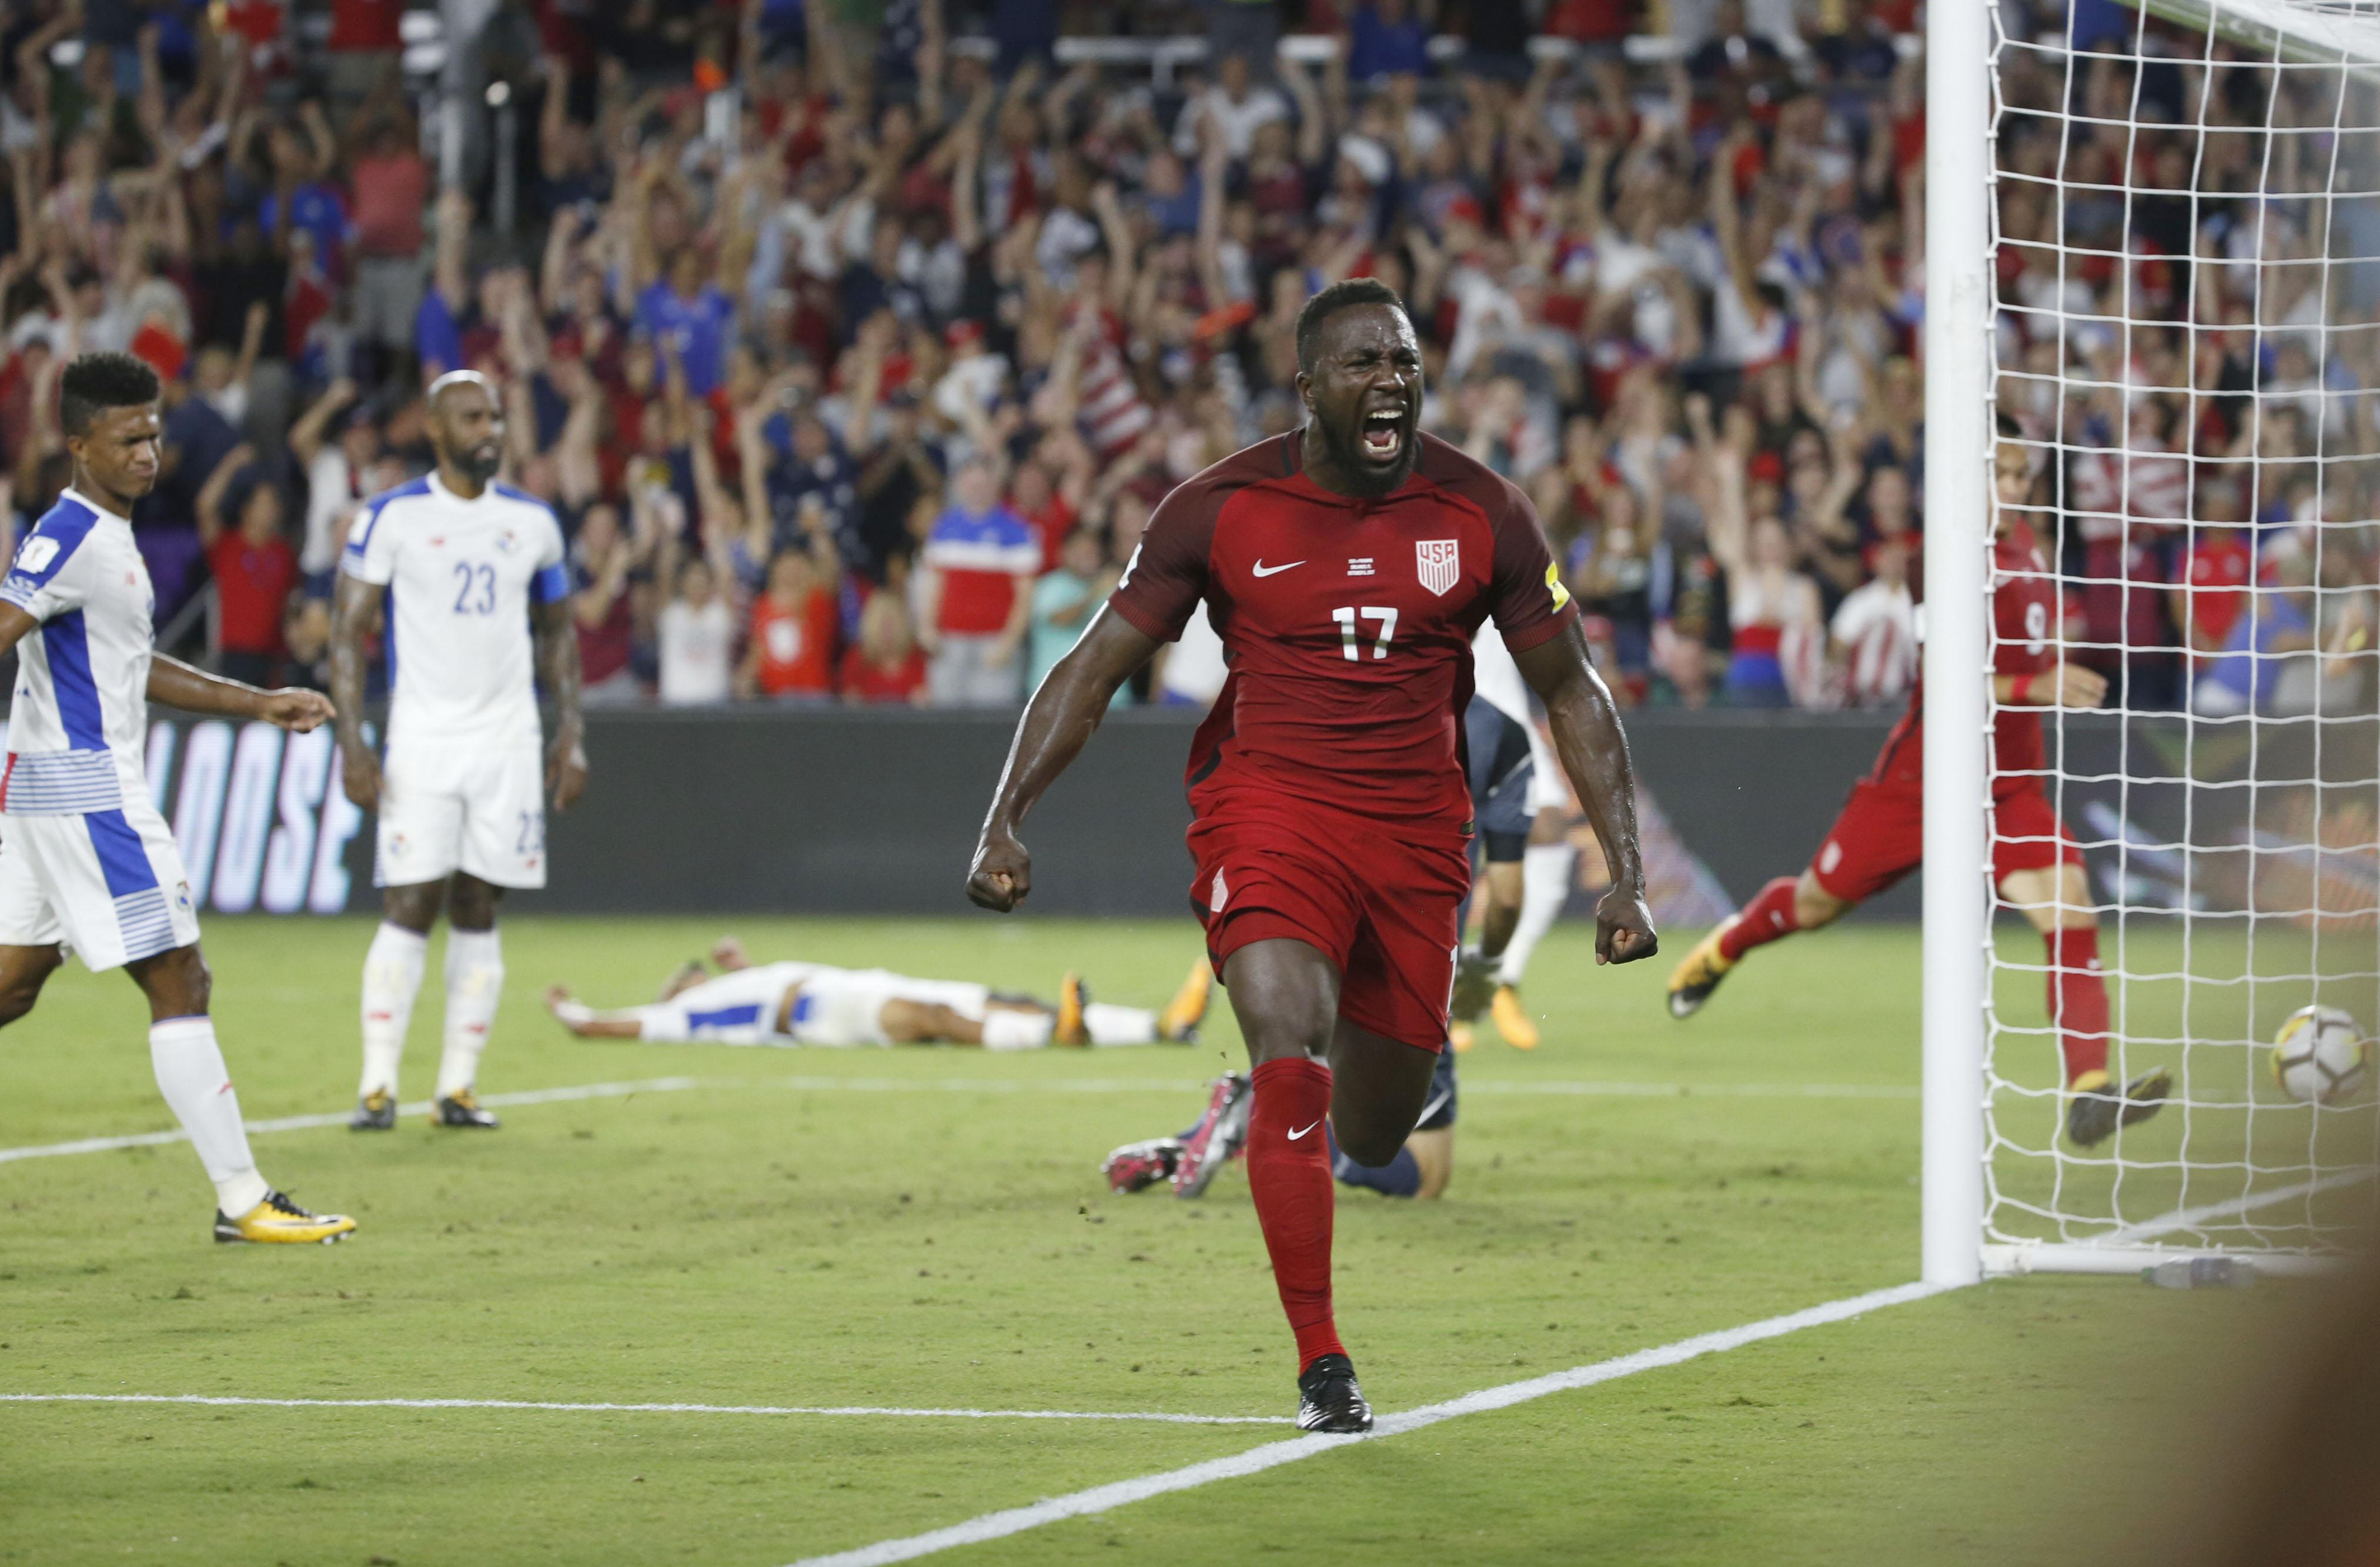 Altidore endured a tough time in England but has found his way again